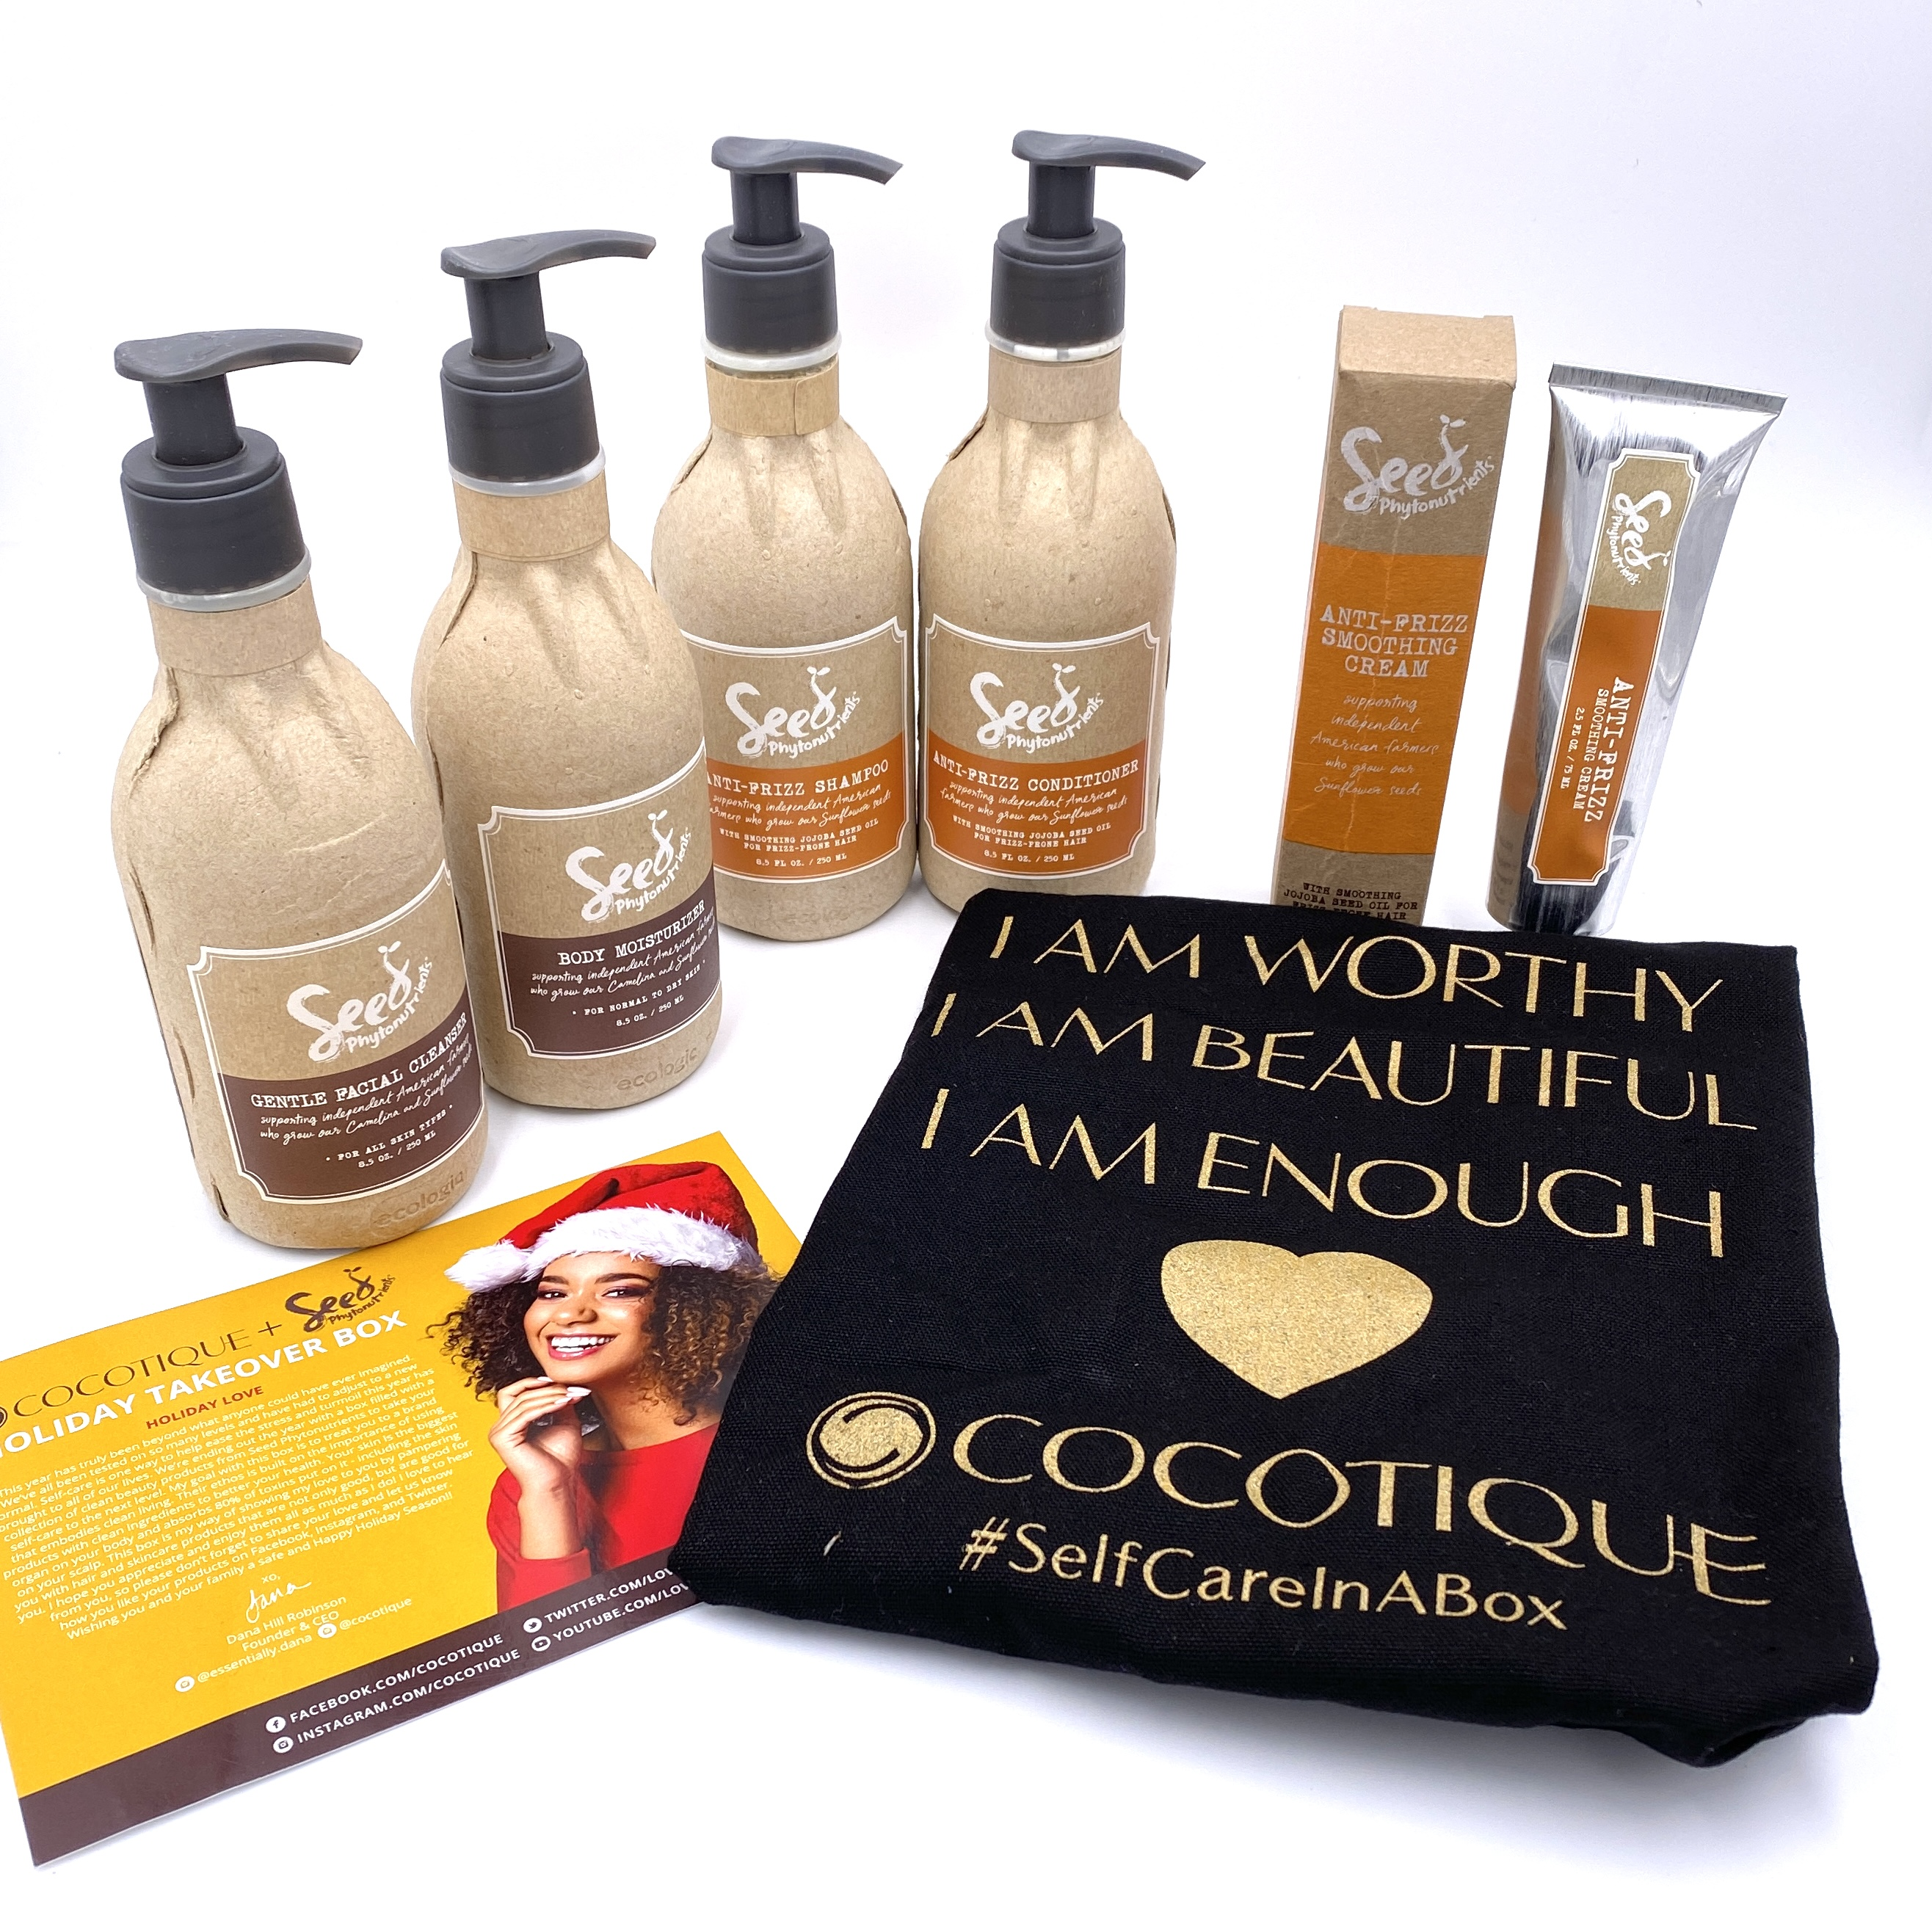 Full Contents for Cocotique December 2020